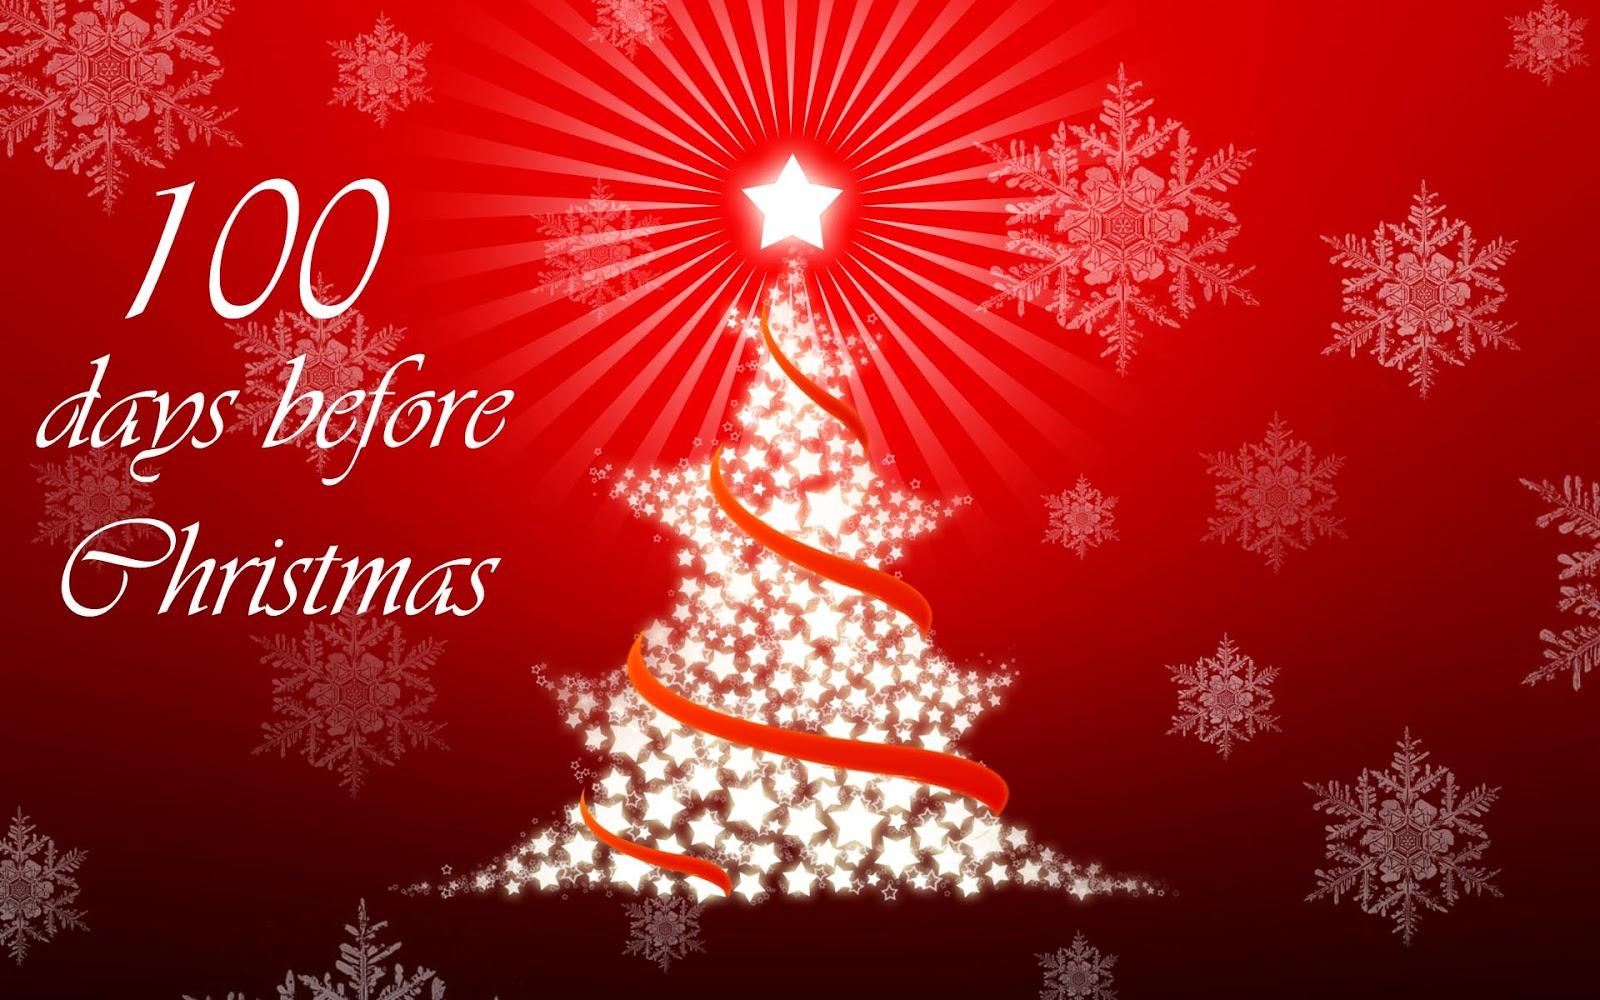 today is exactly 100 days to christmas you can be as rich as you want for christmas and have a great time with family and friends on that day by following